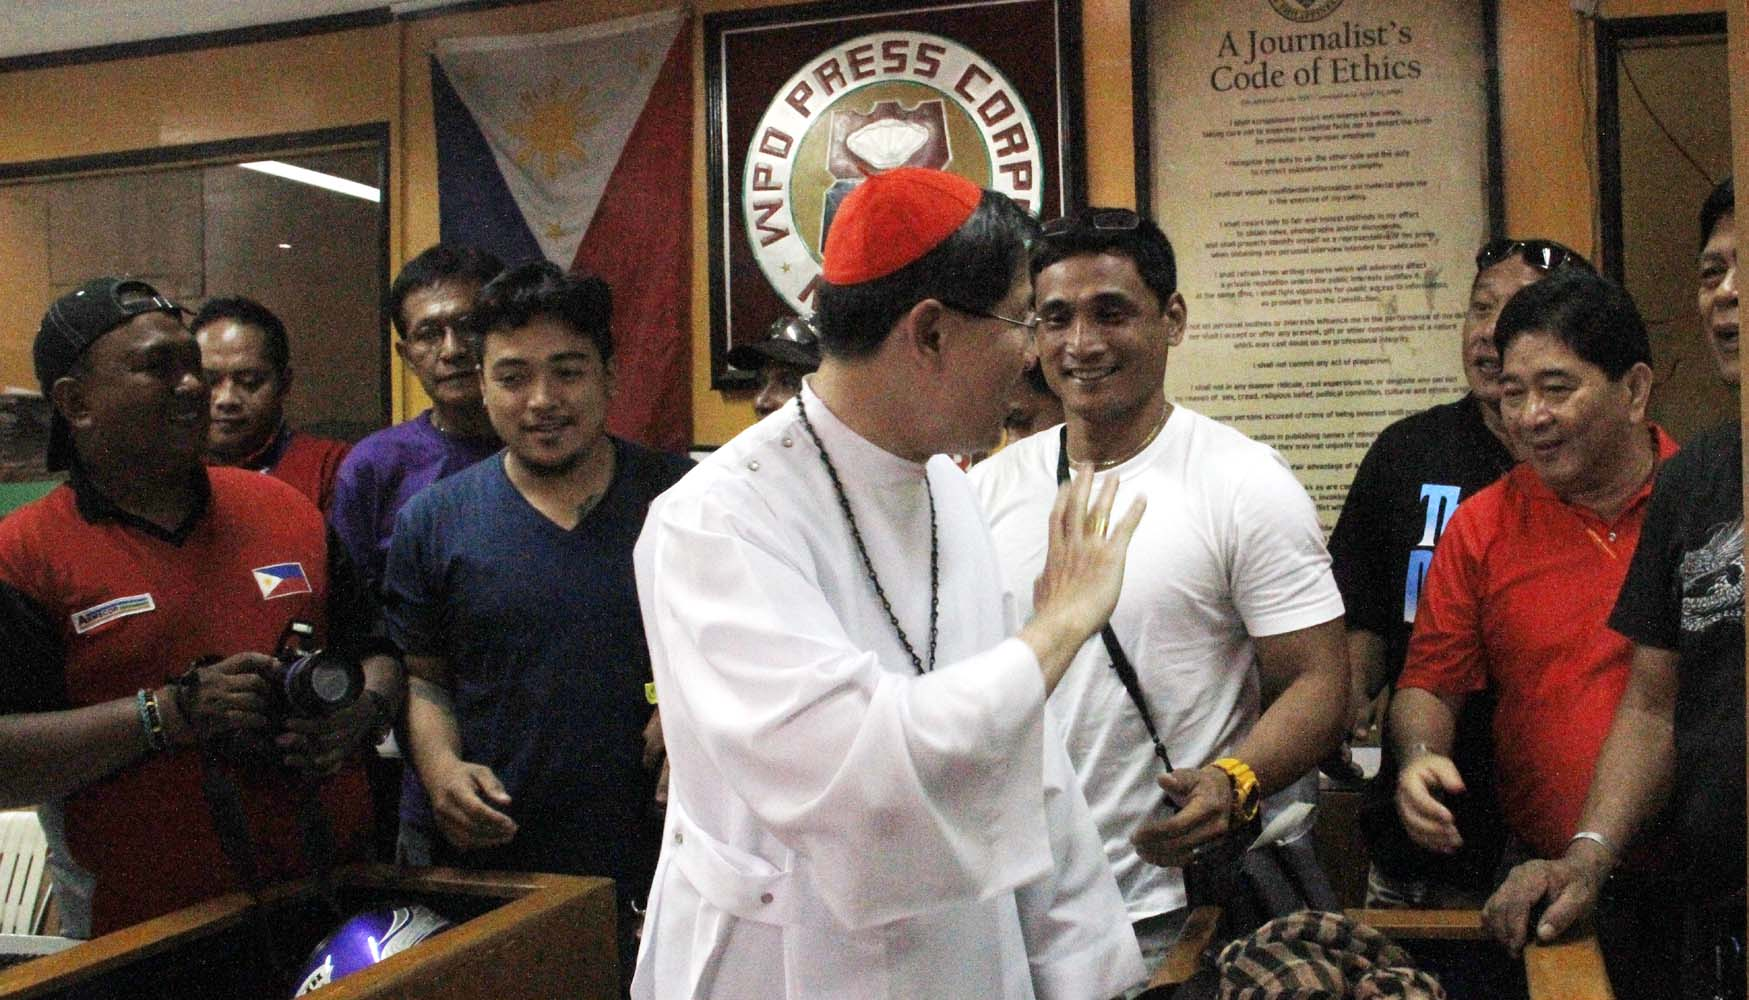 His Eminence LUIS ANTONIO G. CARDINAL TAGLE visits the members of the Manila Police District Press Corps after officiating a Holy mass inside the MPD Detention Cell. He is the first Cardinal who visited the Manila Police District Headquarters on Saturday, August 23,2014, on United Nations Avenue, Manila (PNA photo by Avito C. Dalan)